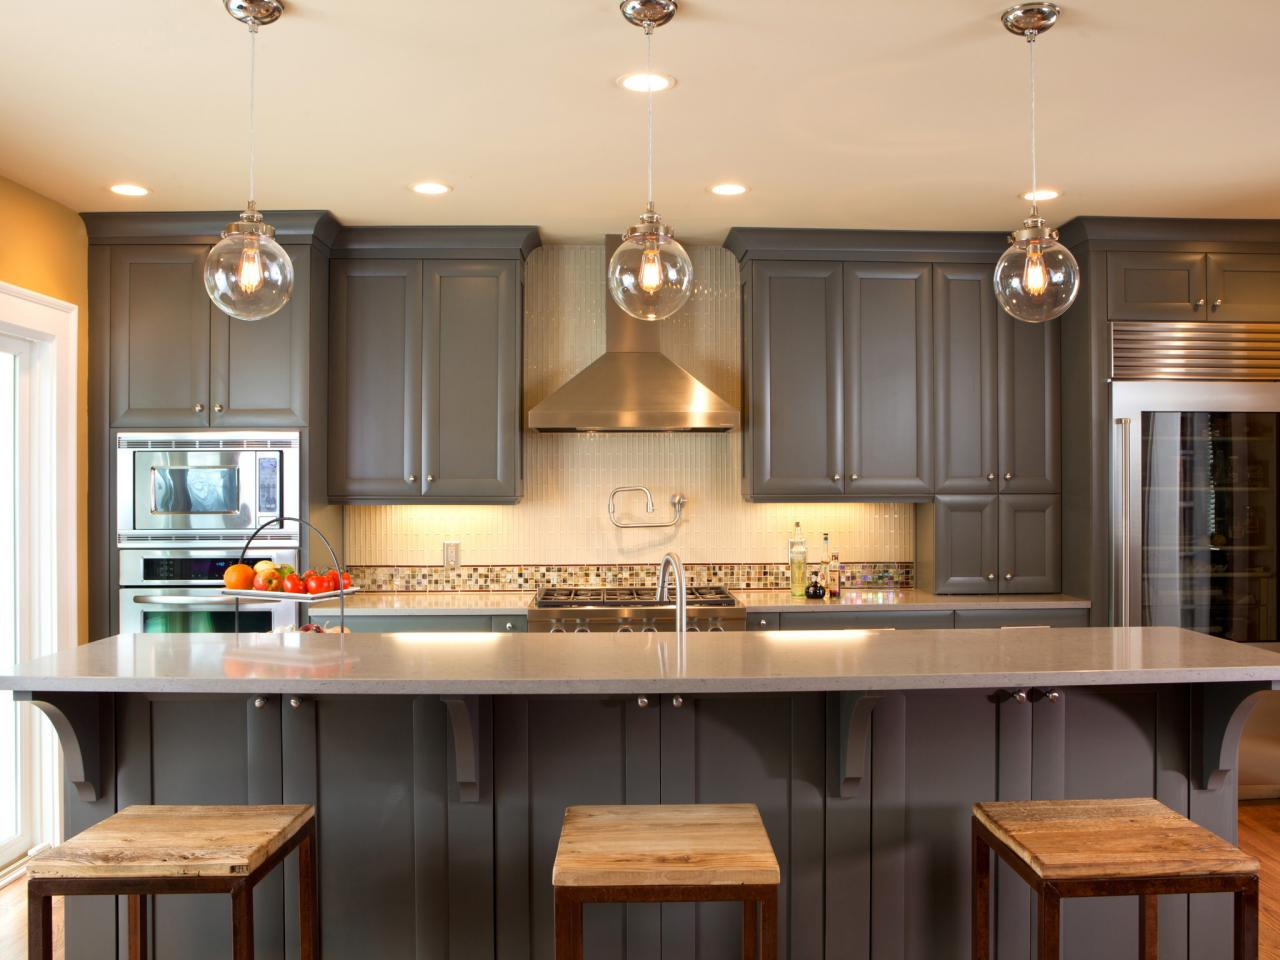 Ideas For Painting Kitchen Cabinets Pictures From HGTV HGTV - Kitchen cabinet painters near me